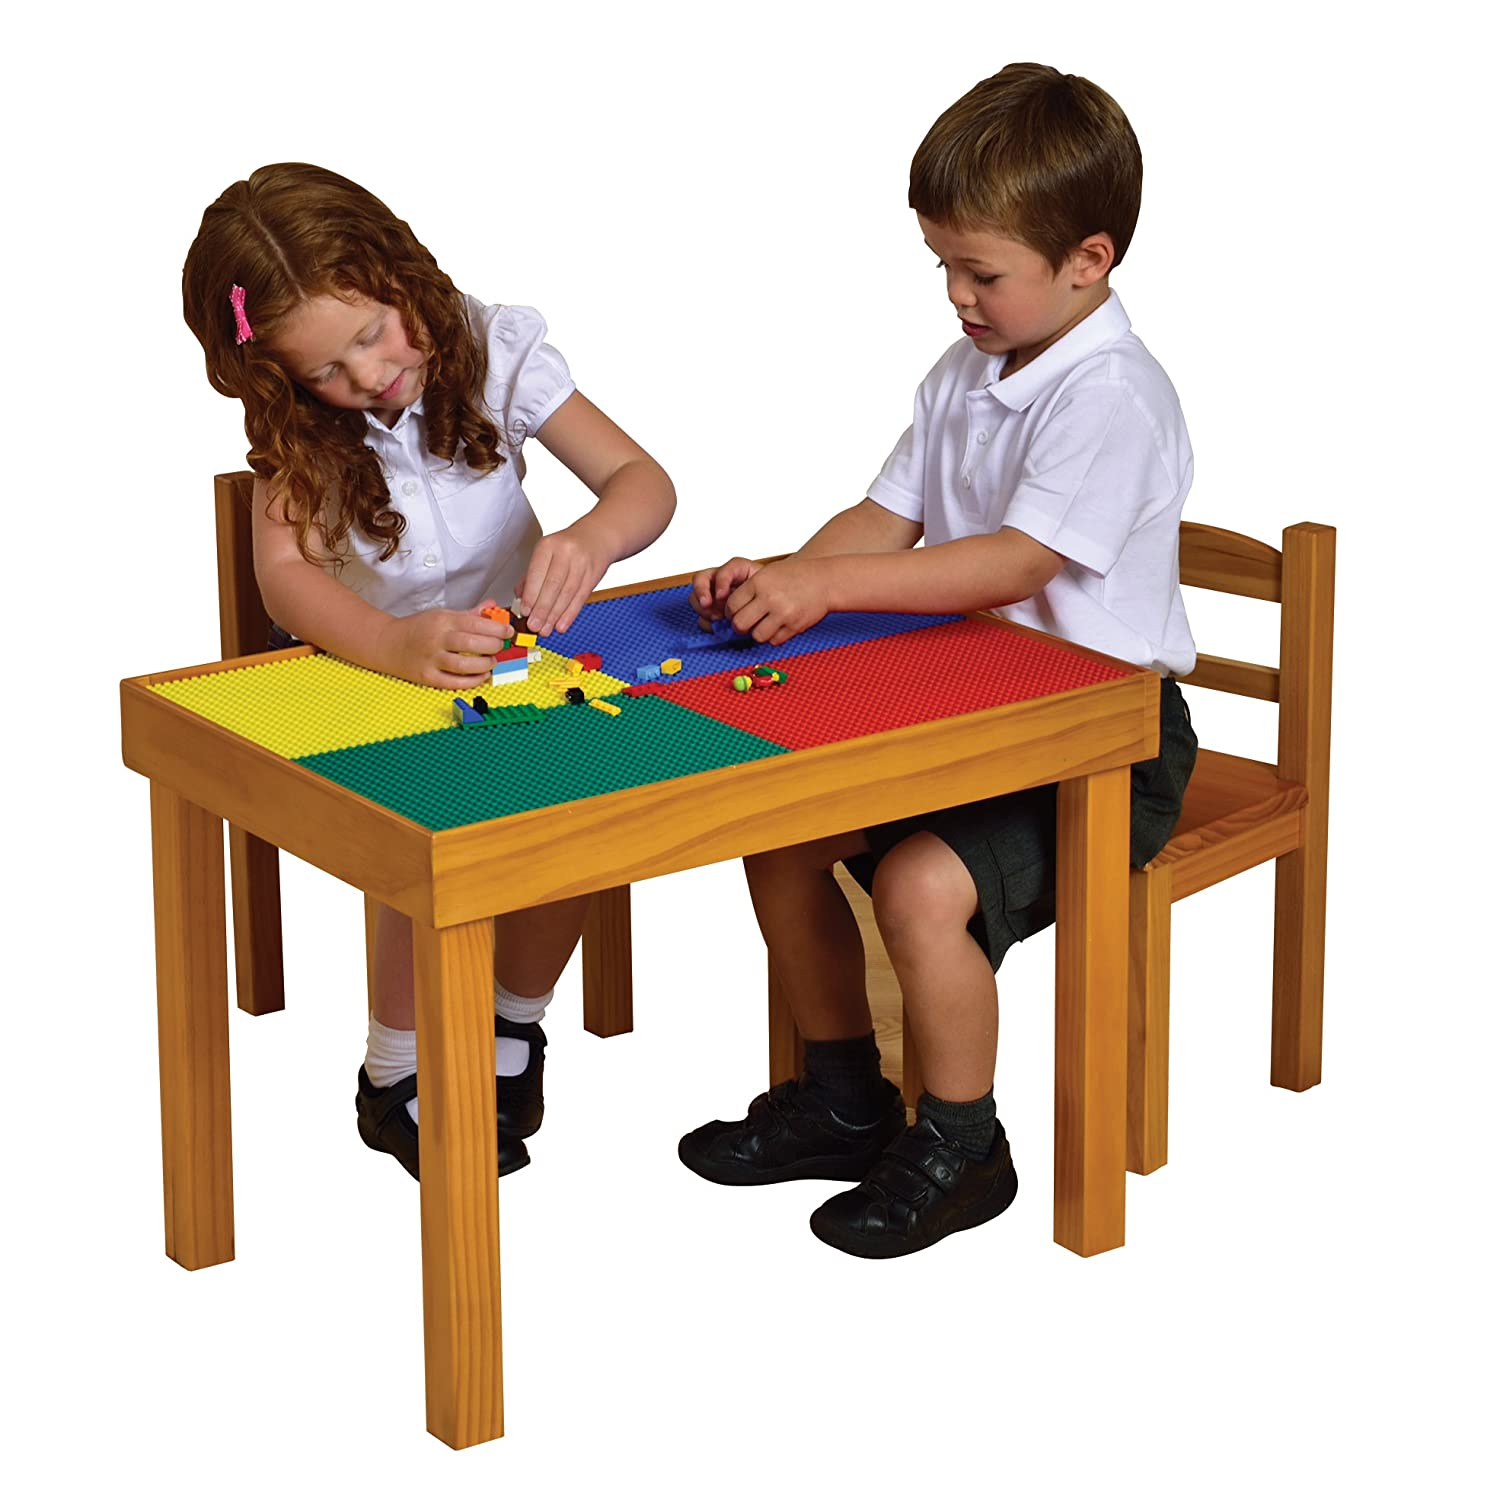 Liberty House Toys Multi-purpose Wooden Table and Chairs Set MT420